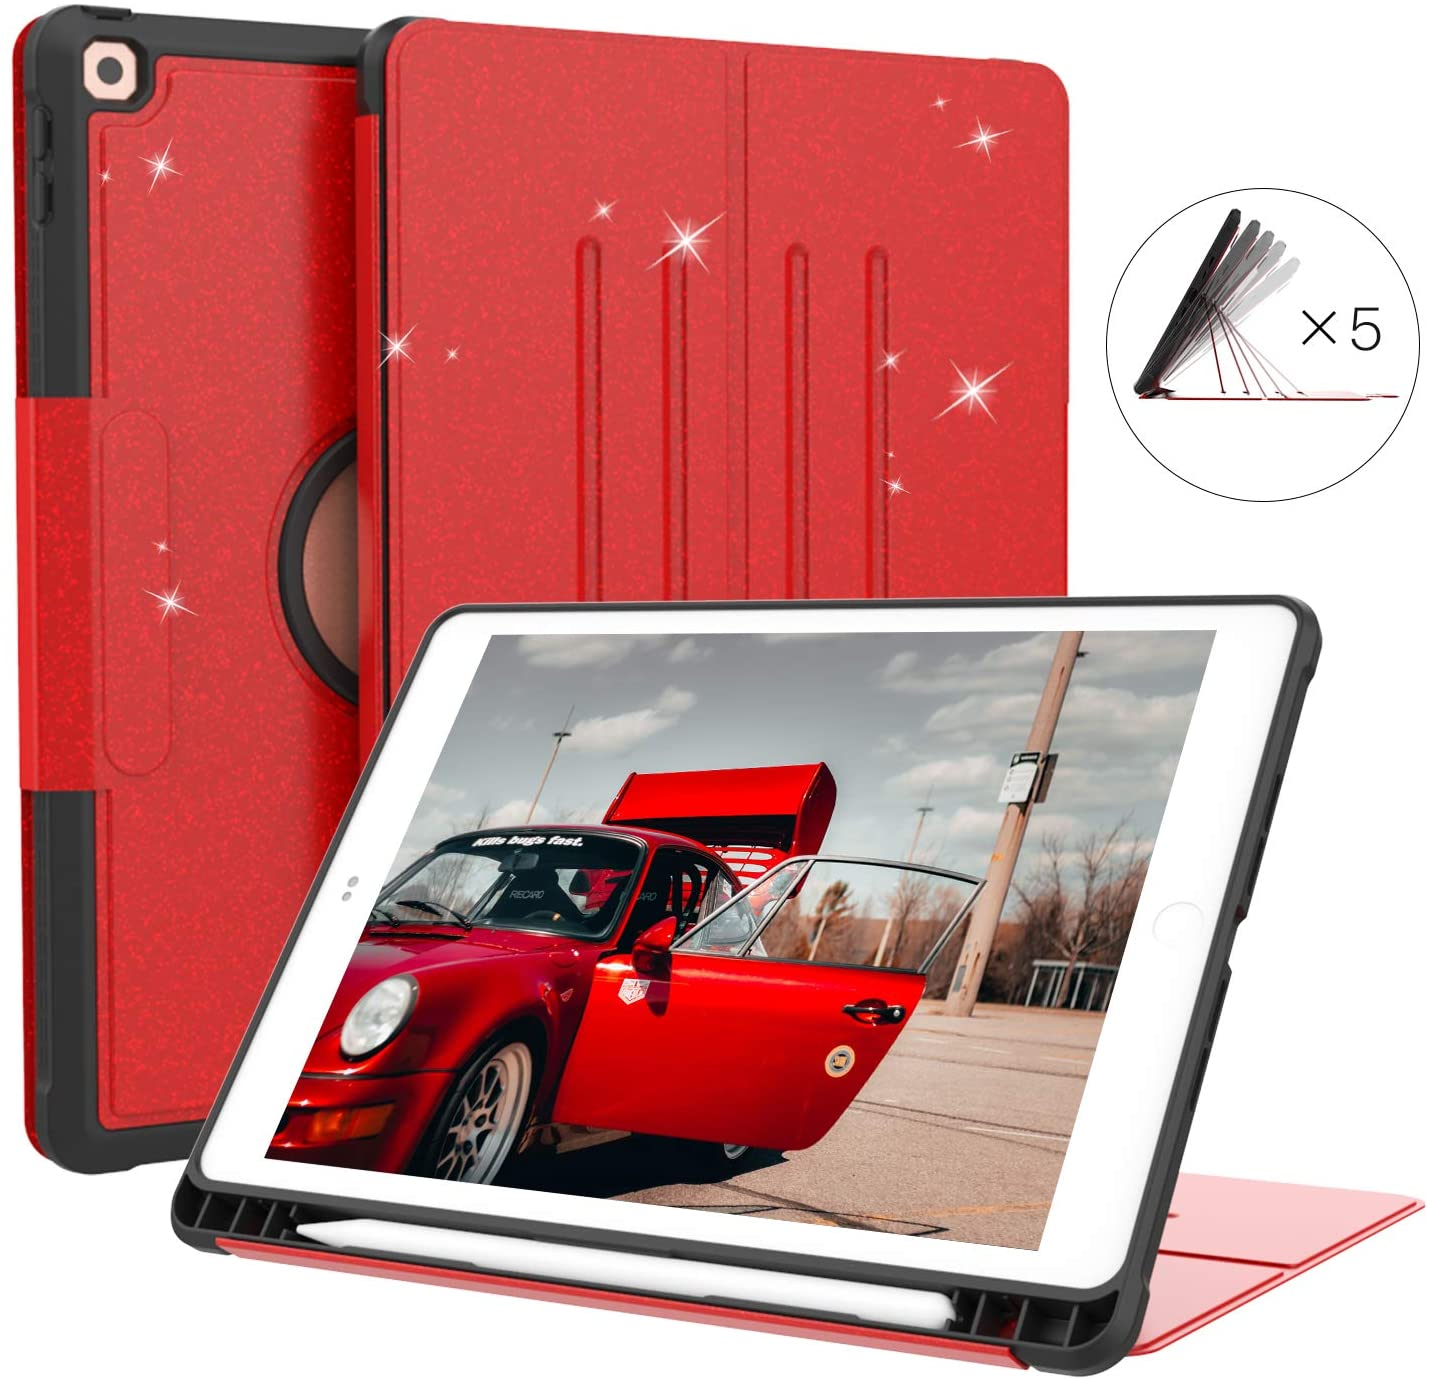 Sevrok iPad 10.2 Case 2019 iPad 7th Generation Case, [5 Magnetic Angles] Glitter Design Protective & Shock Absorption Cover with Pencil Holder, Auto Wake/Sleep for iPad 10.2